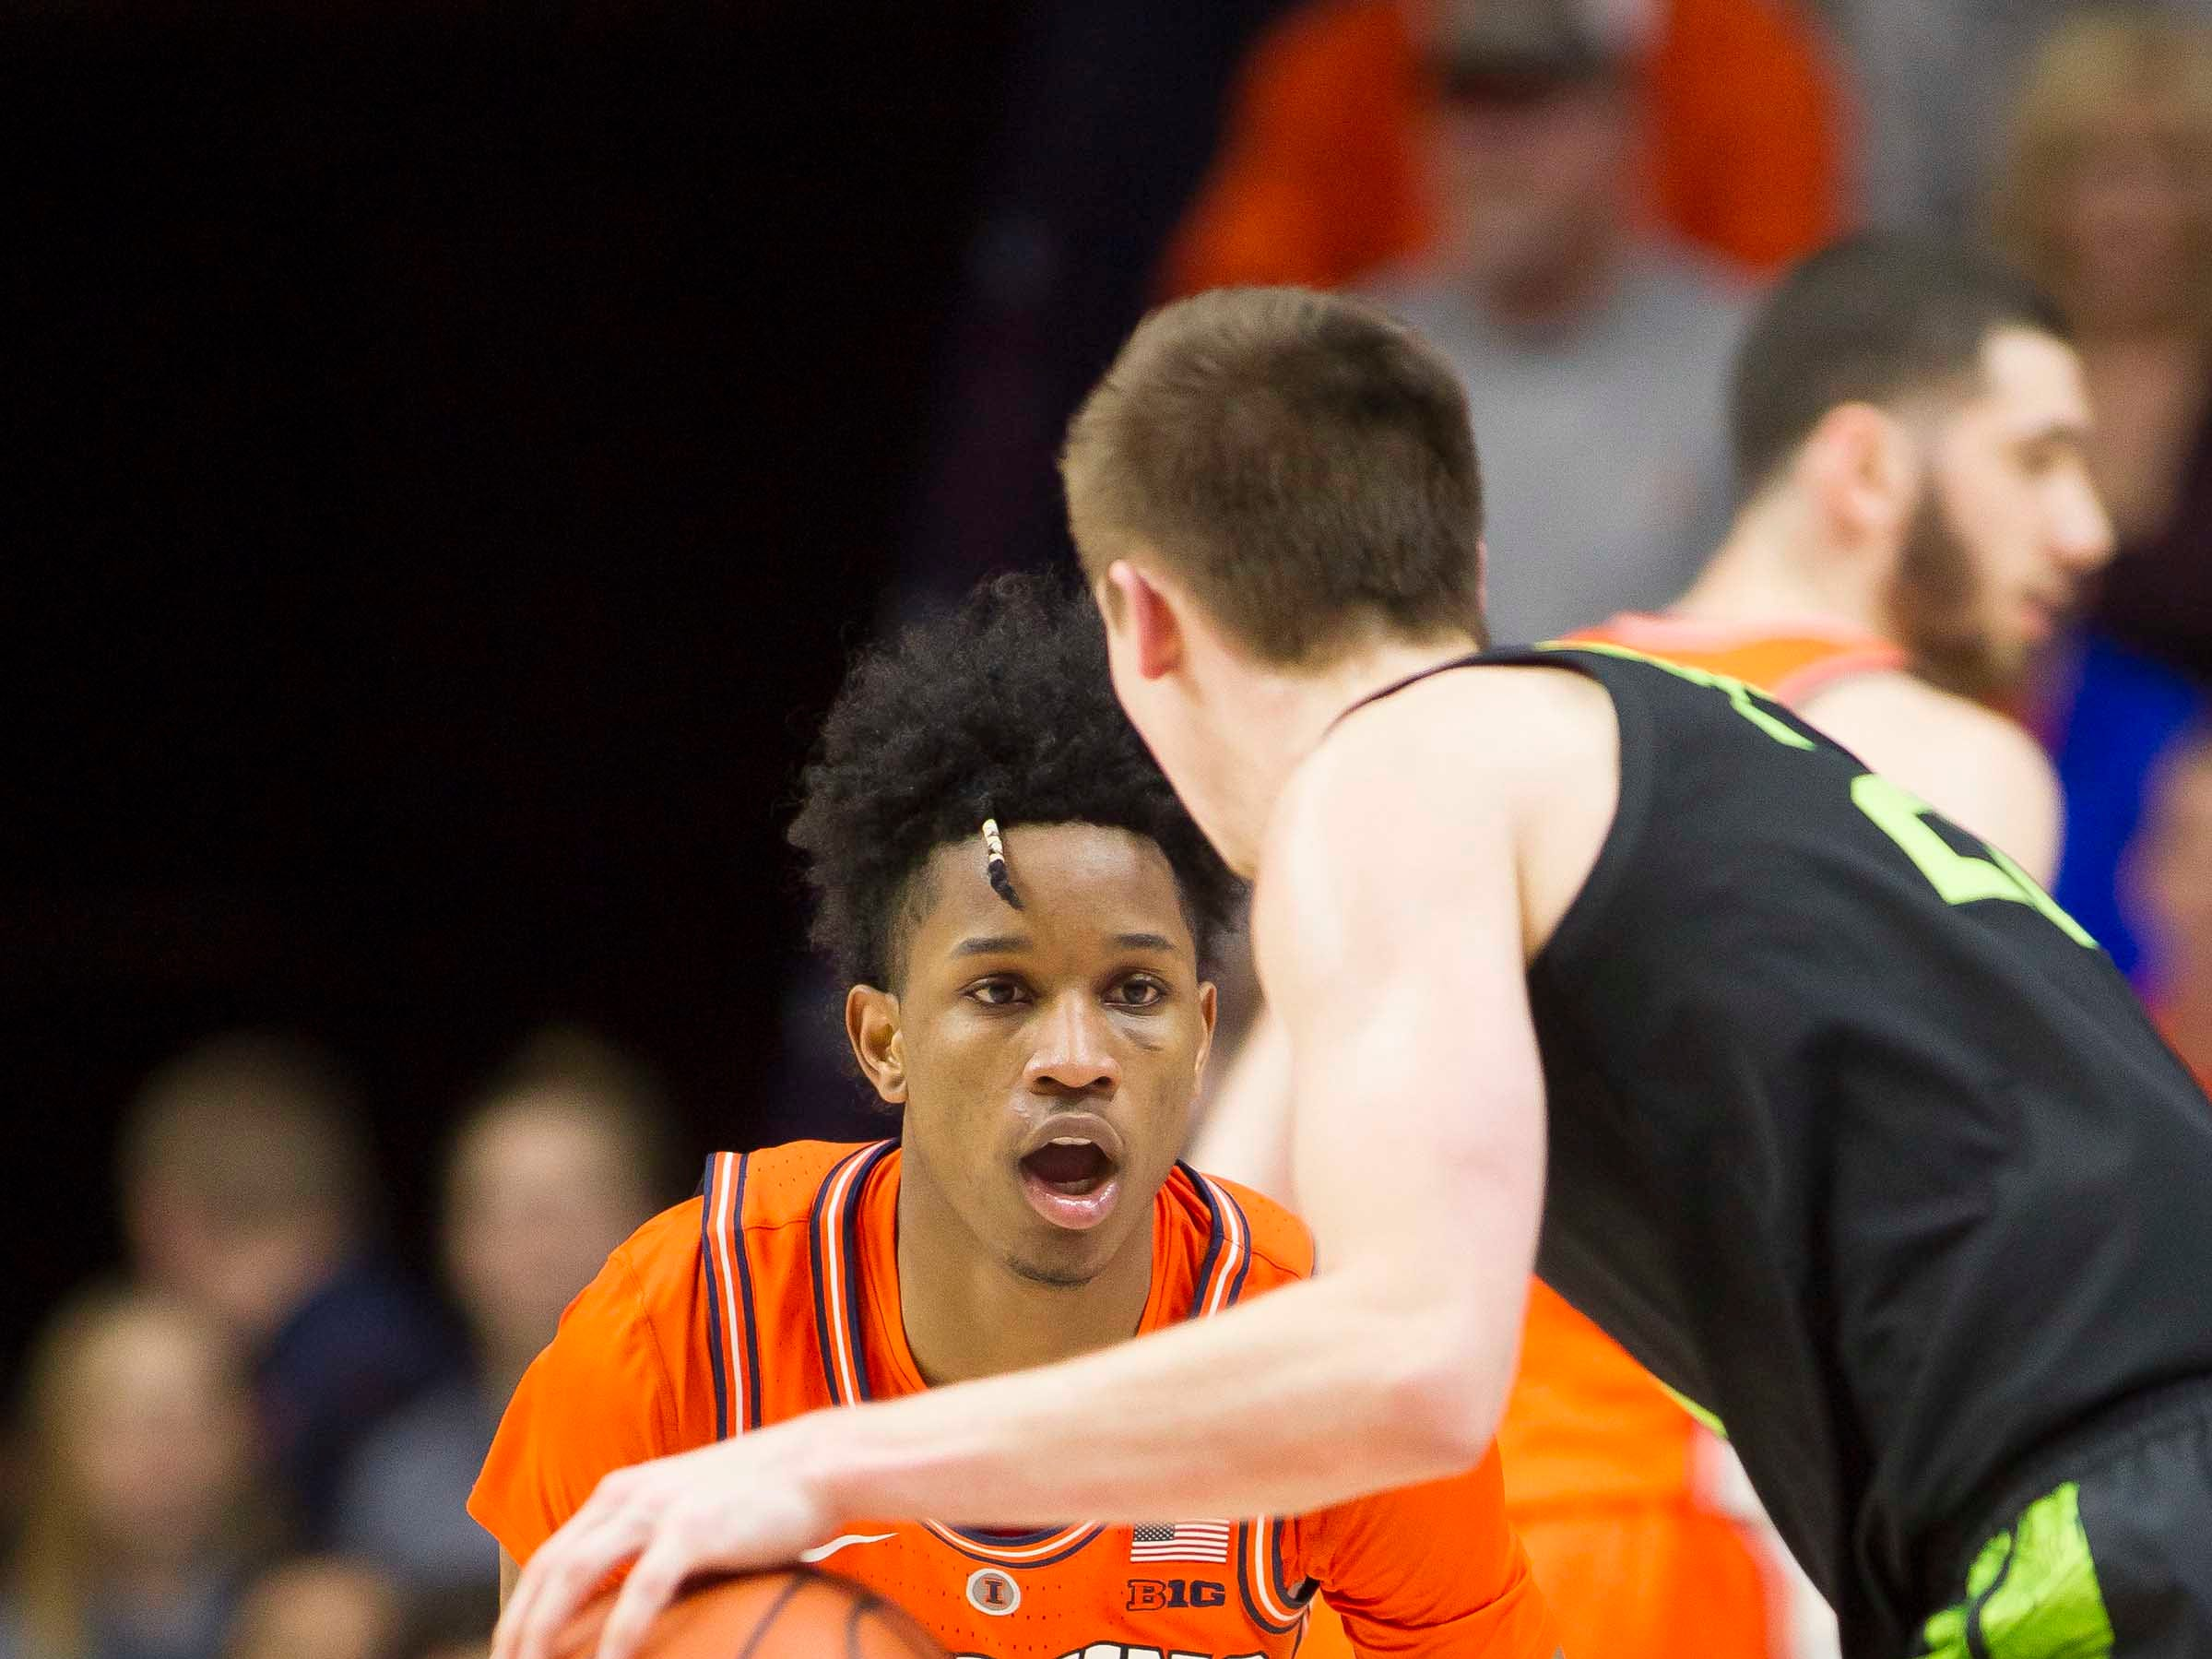 Feb 5, 2019; Champaign, IL, USA; Illinois Fighting Illini guard Trent Frazier (1) defends Michigan State Spartans guard Matt McQuaid (20) during the first half at State Farm Center. Mandatory Credit: Mike Granse-USA TODAY Sports